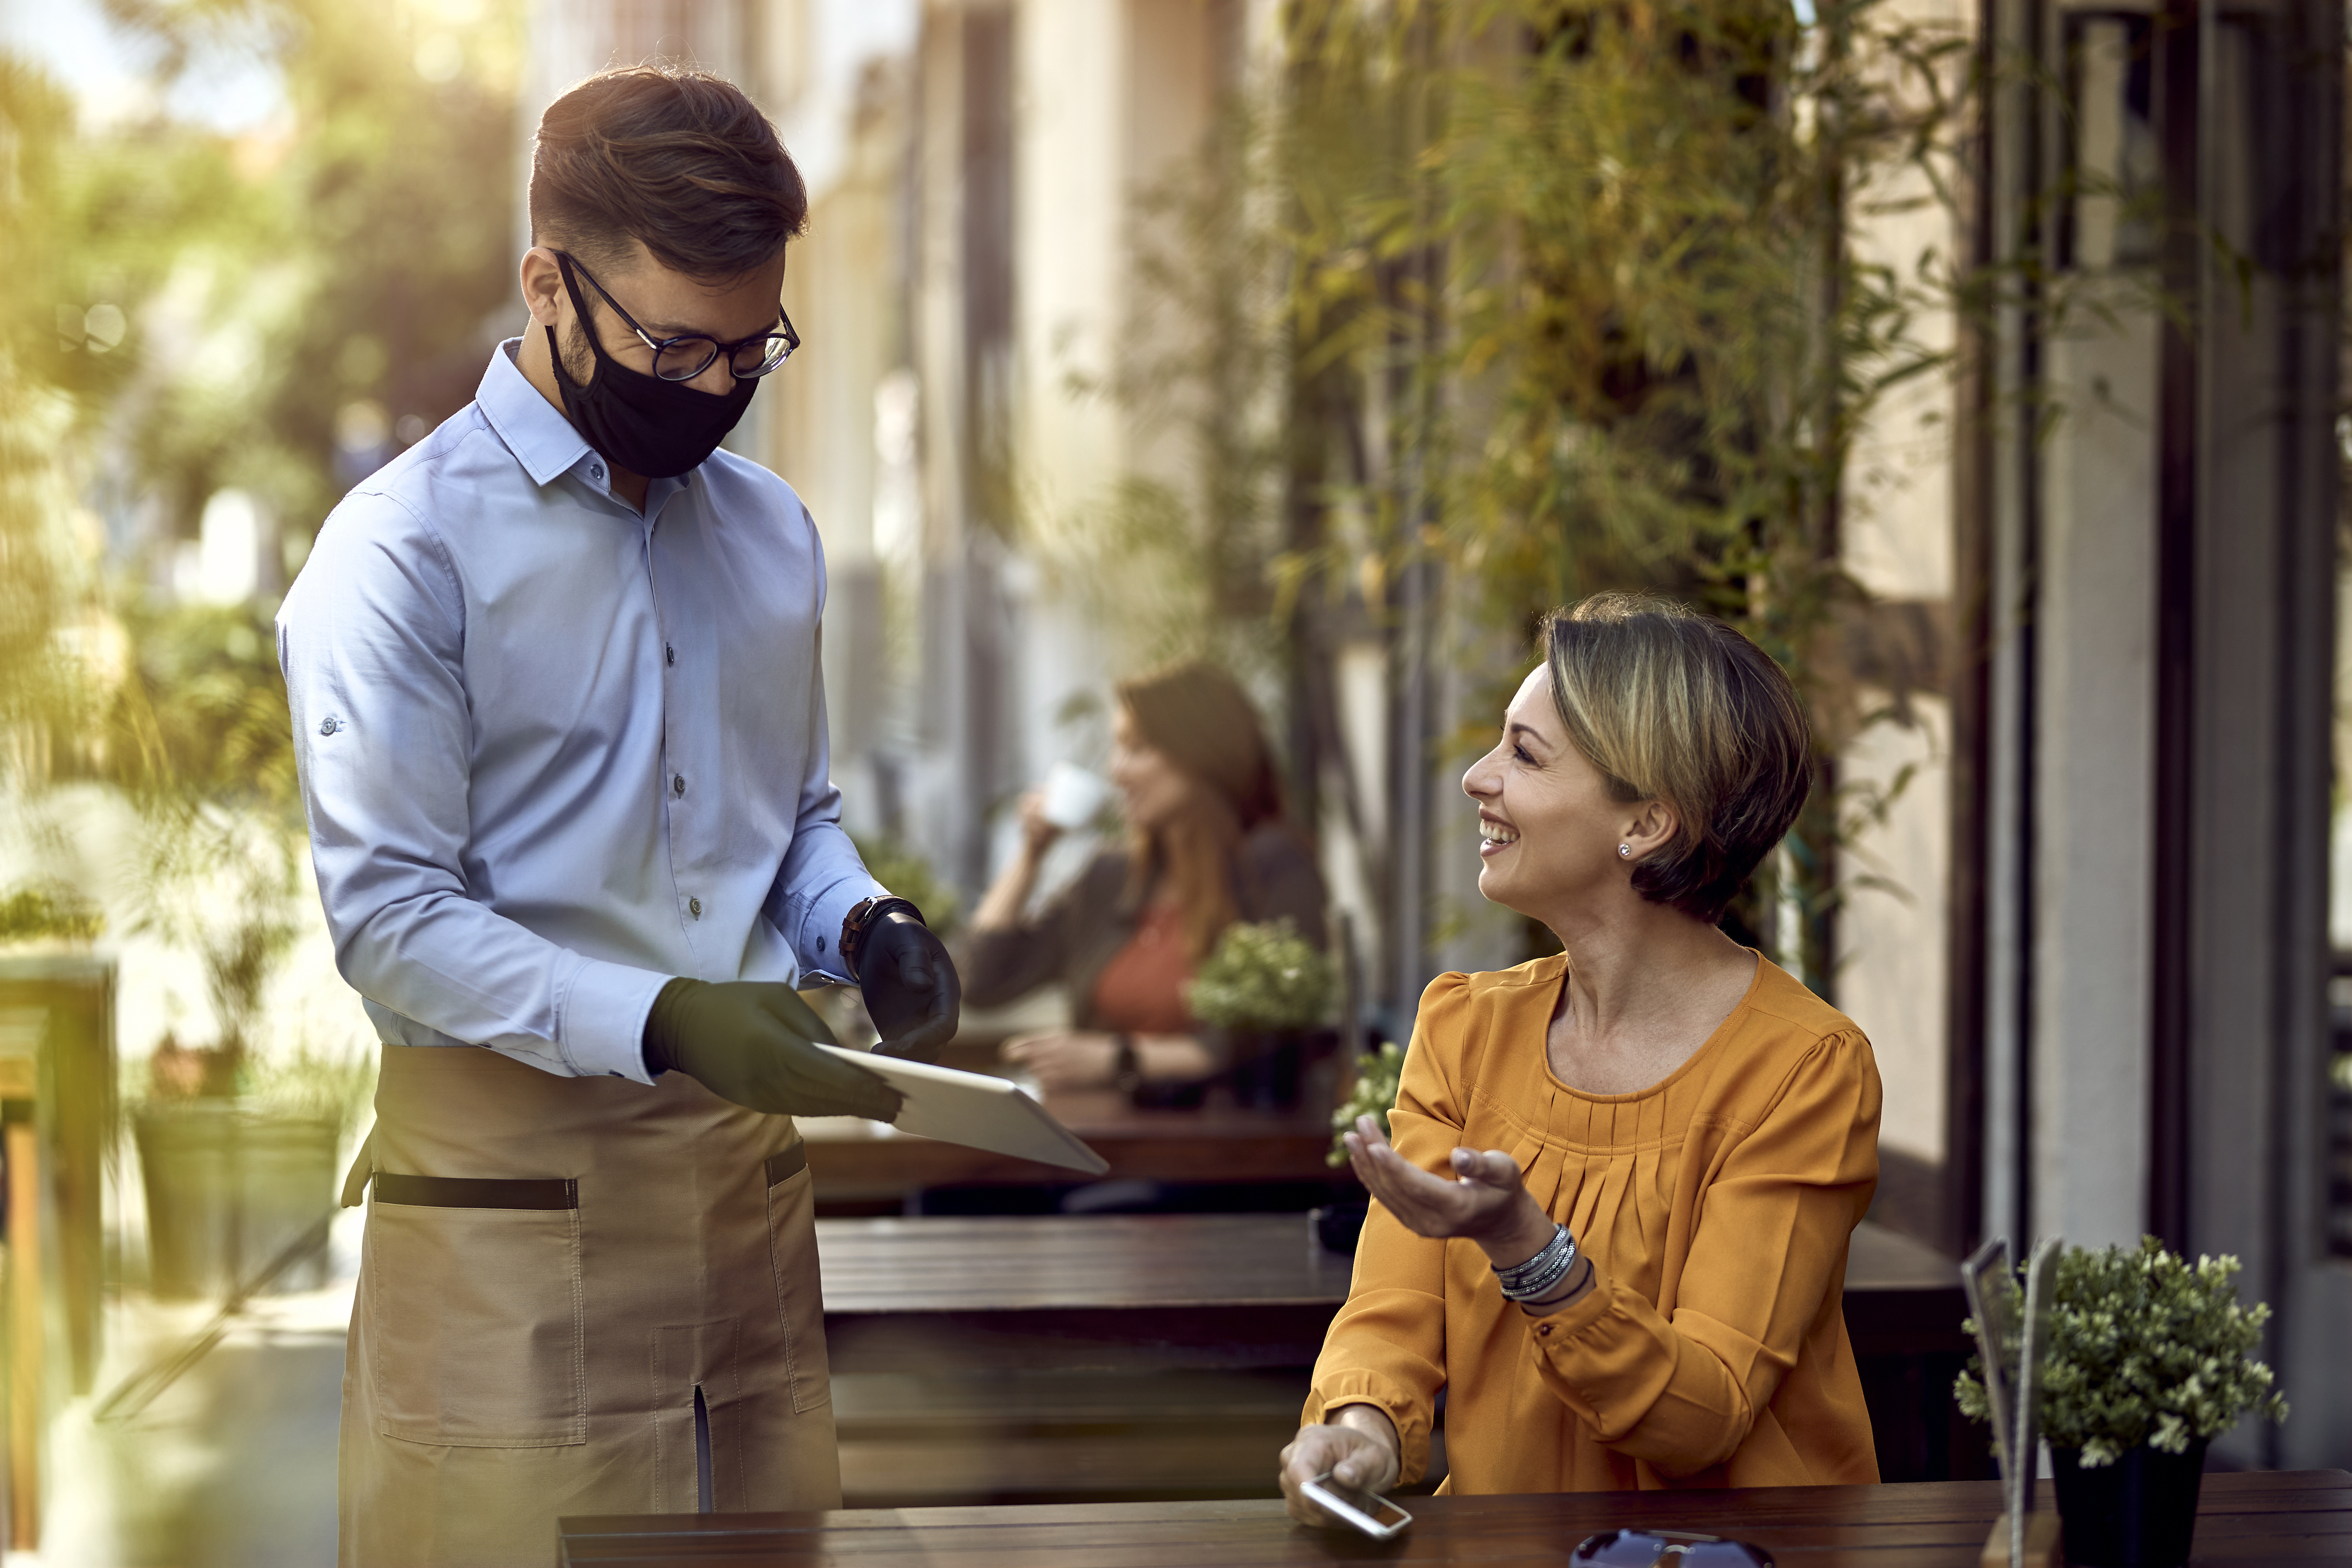 4 Ways to Help Tipped Employees Gain Financial Security Right Now